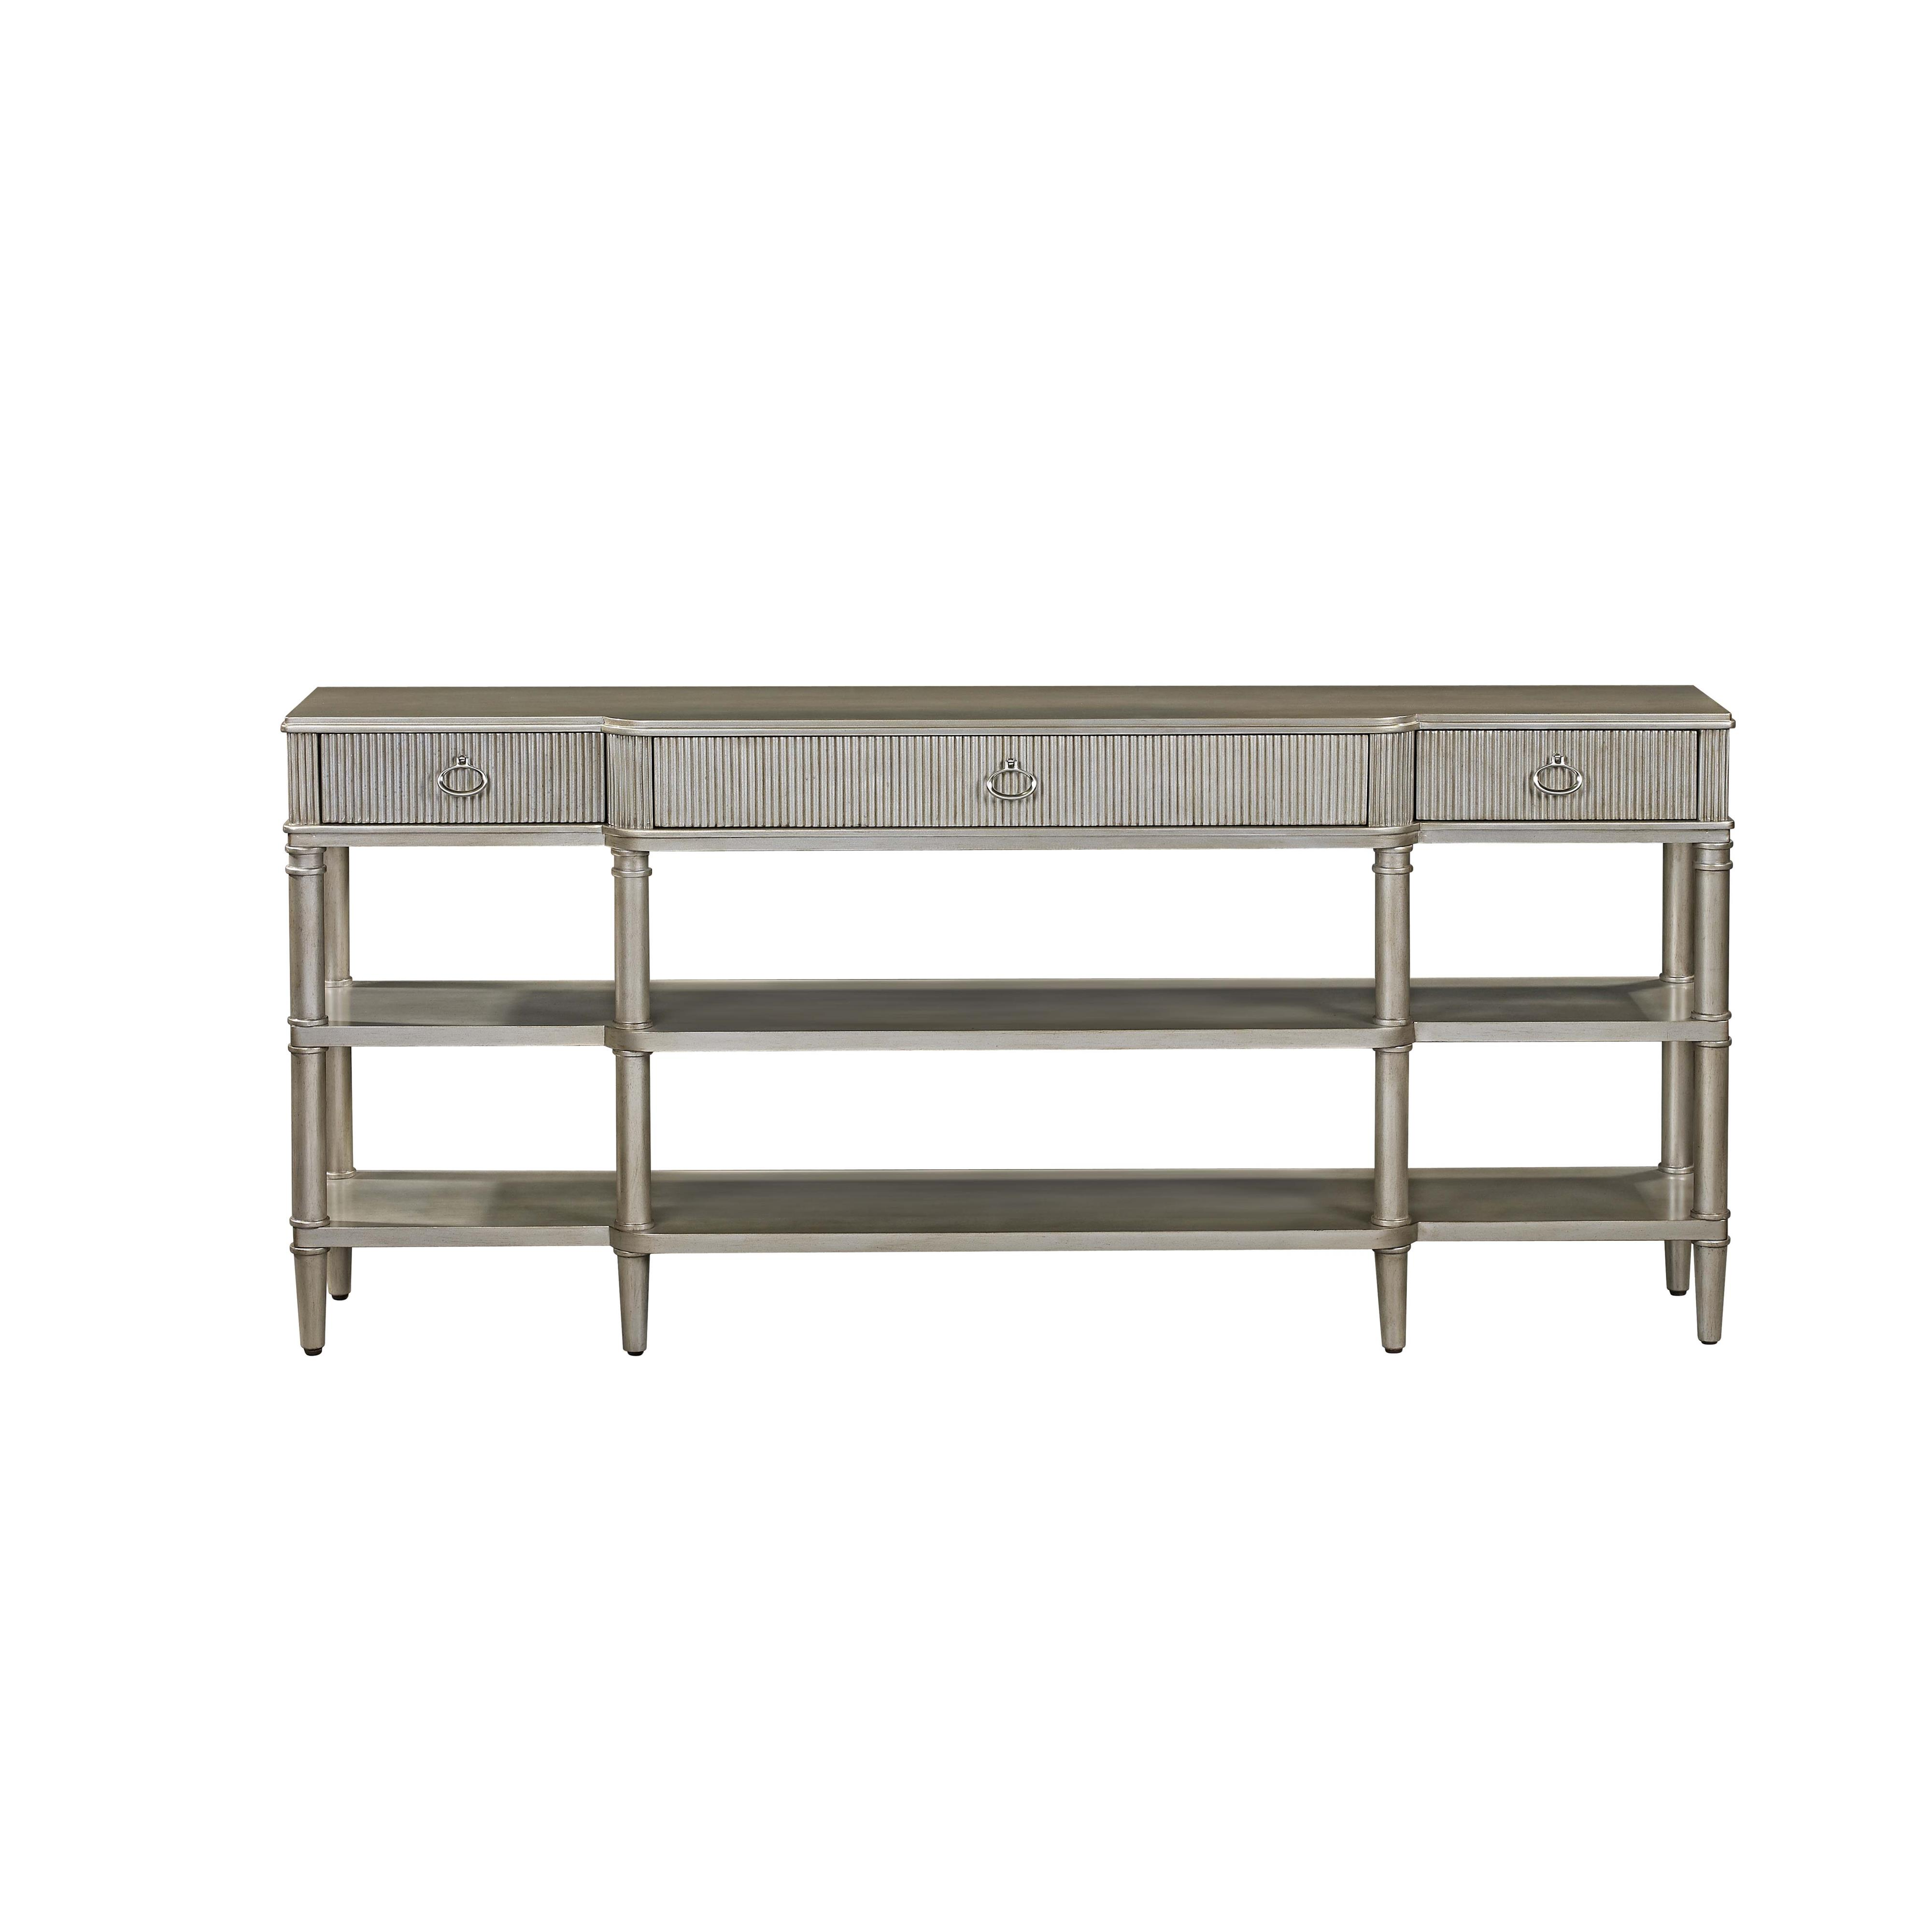 Hollywood Glam Vanesta Breakfront Console by Bassett Mirror at Alison Craig Home Furnishings